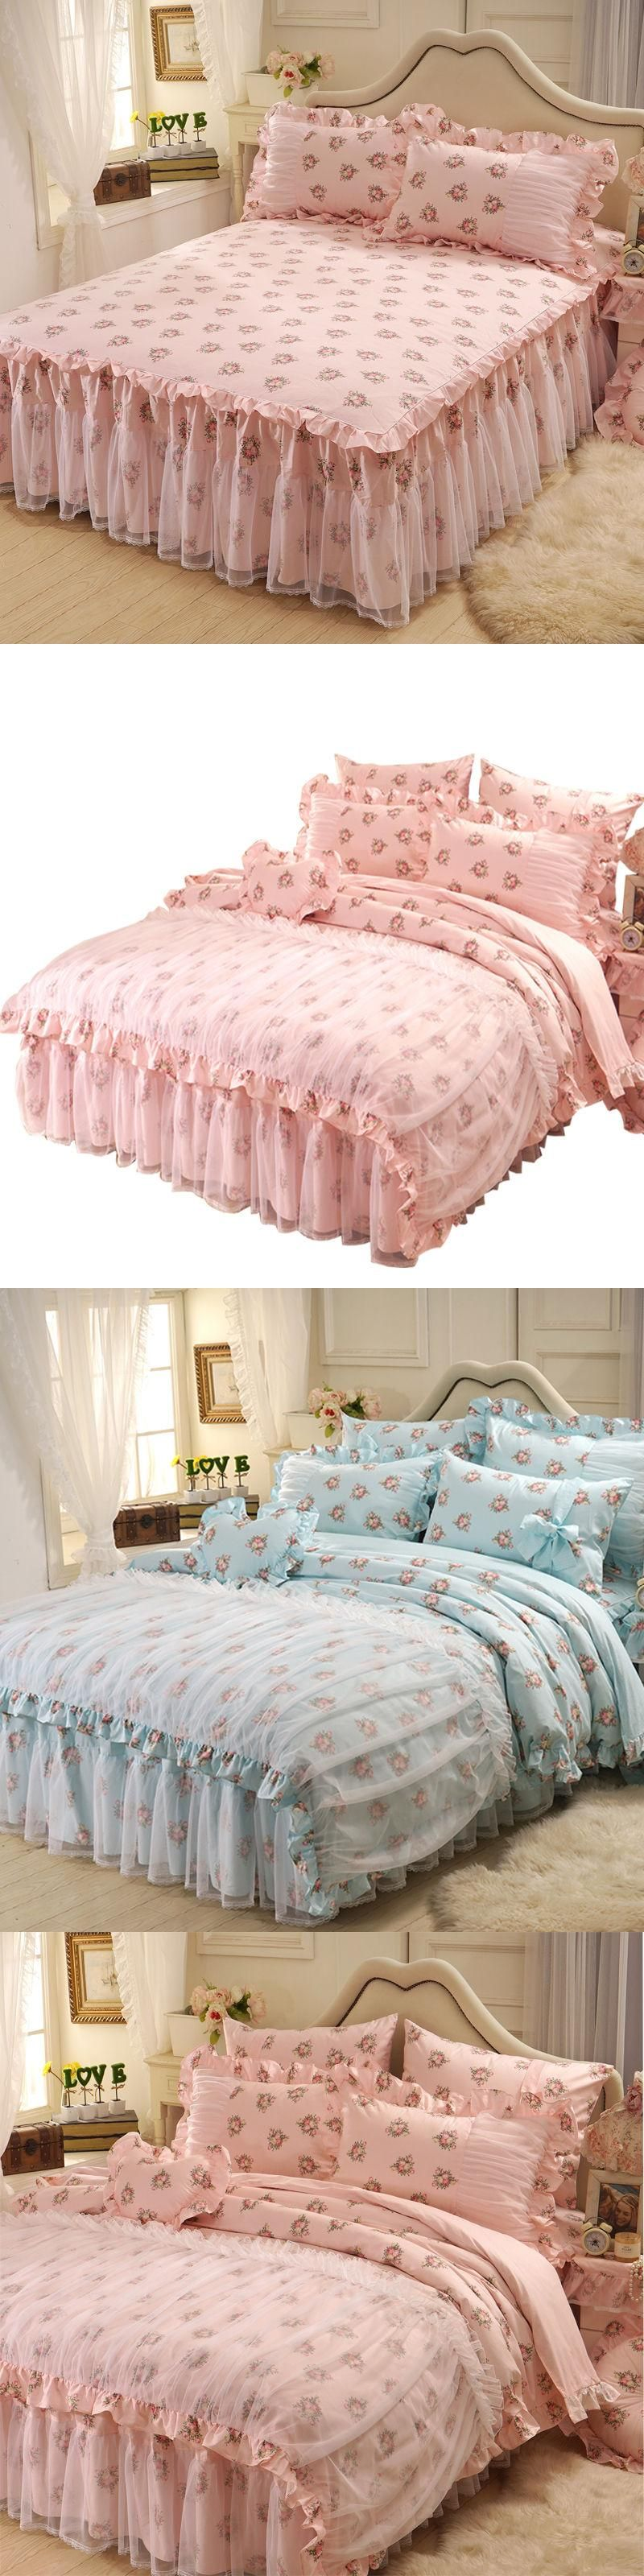 Princess pastoral fashion bedding set queen size,lace bed skirts ...